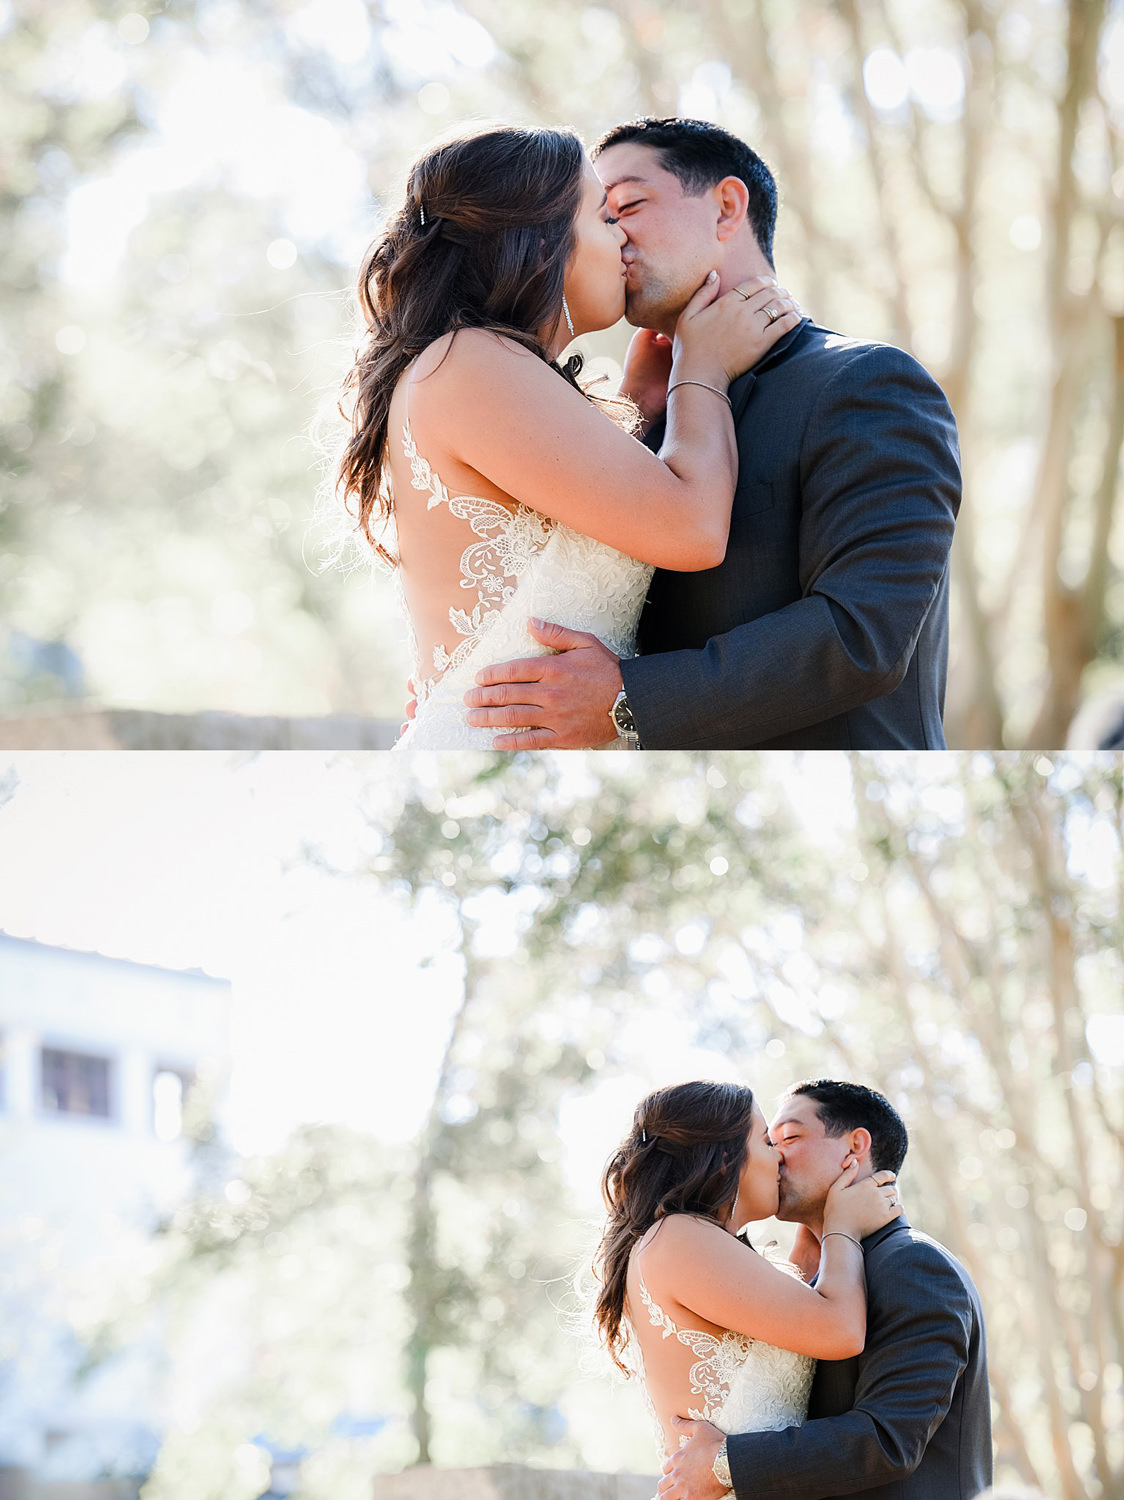 bride-and-groom-kiss-at-MOCA-wedding-virginia-beach-wedding-venue-melissa-bliss-photography.jpg